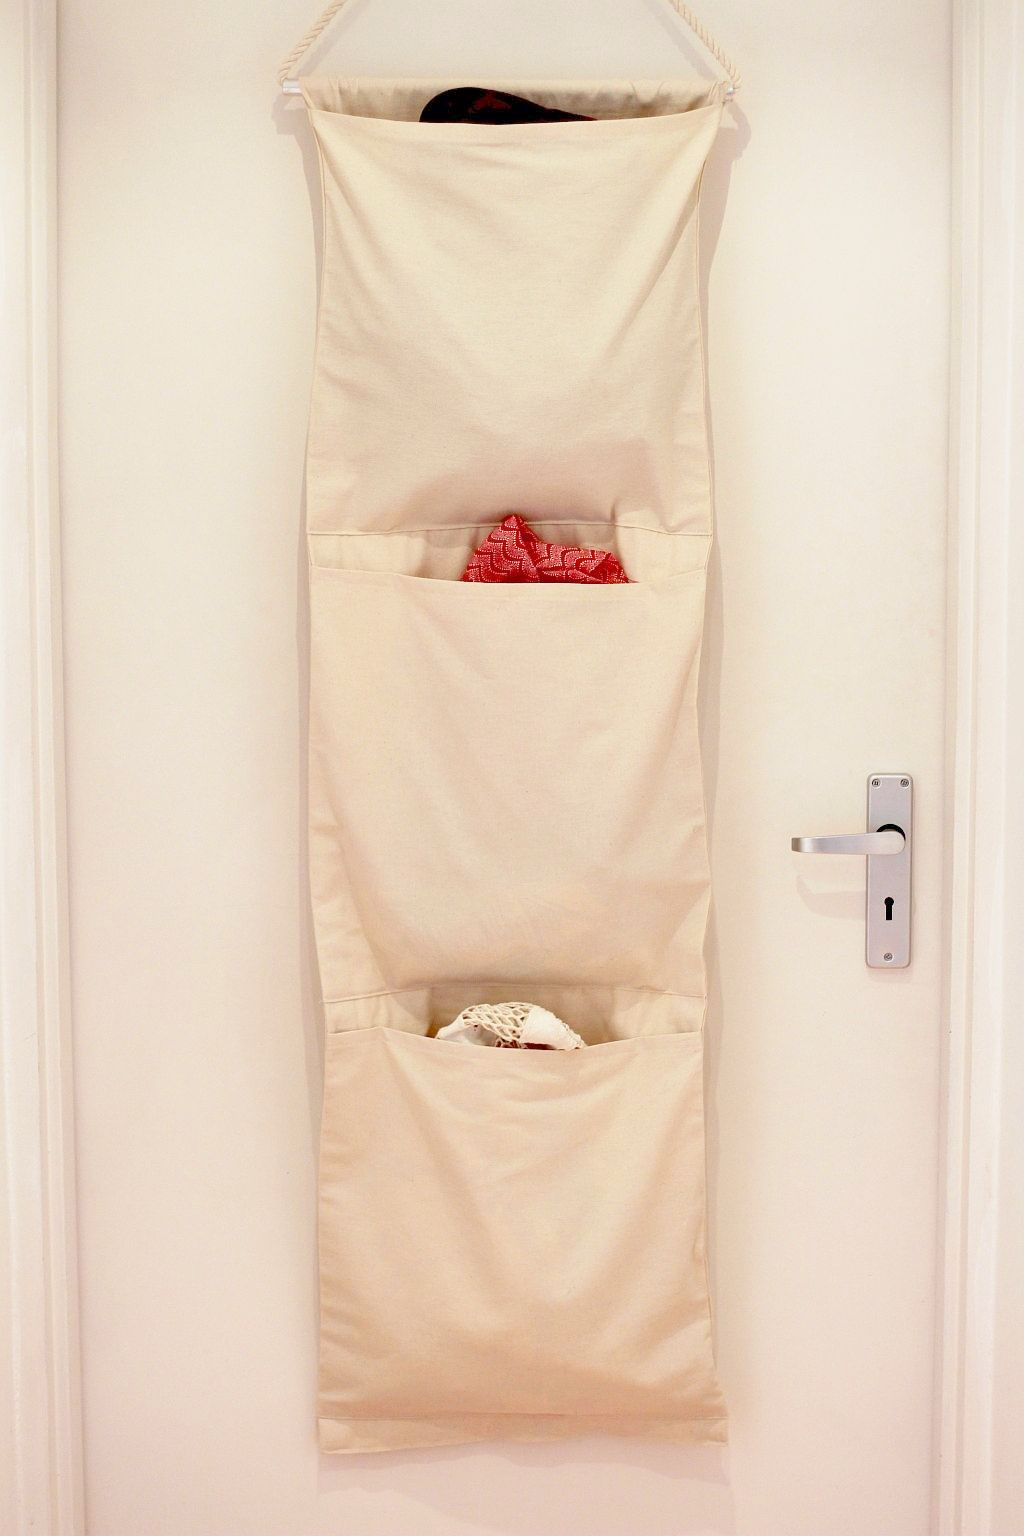 Vertical Hanging Laundry Bag Hanging Laundry Bag Laundry Bags